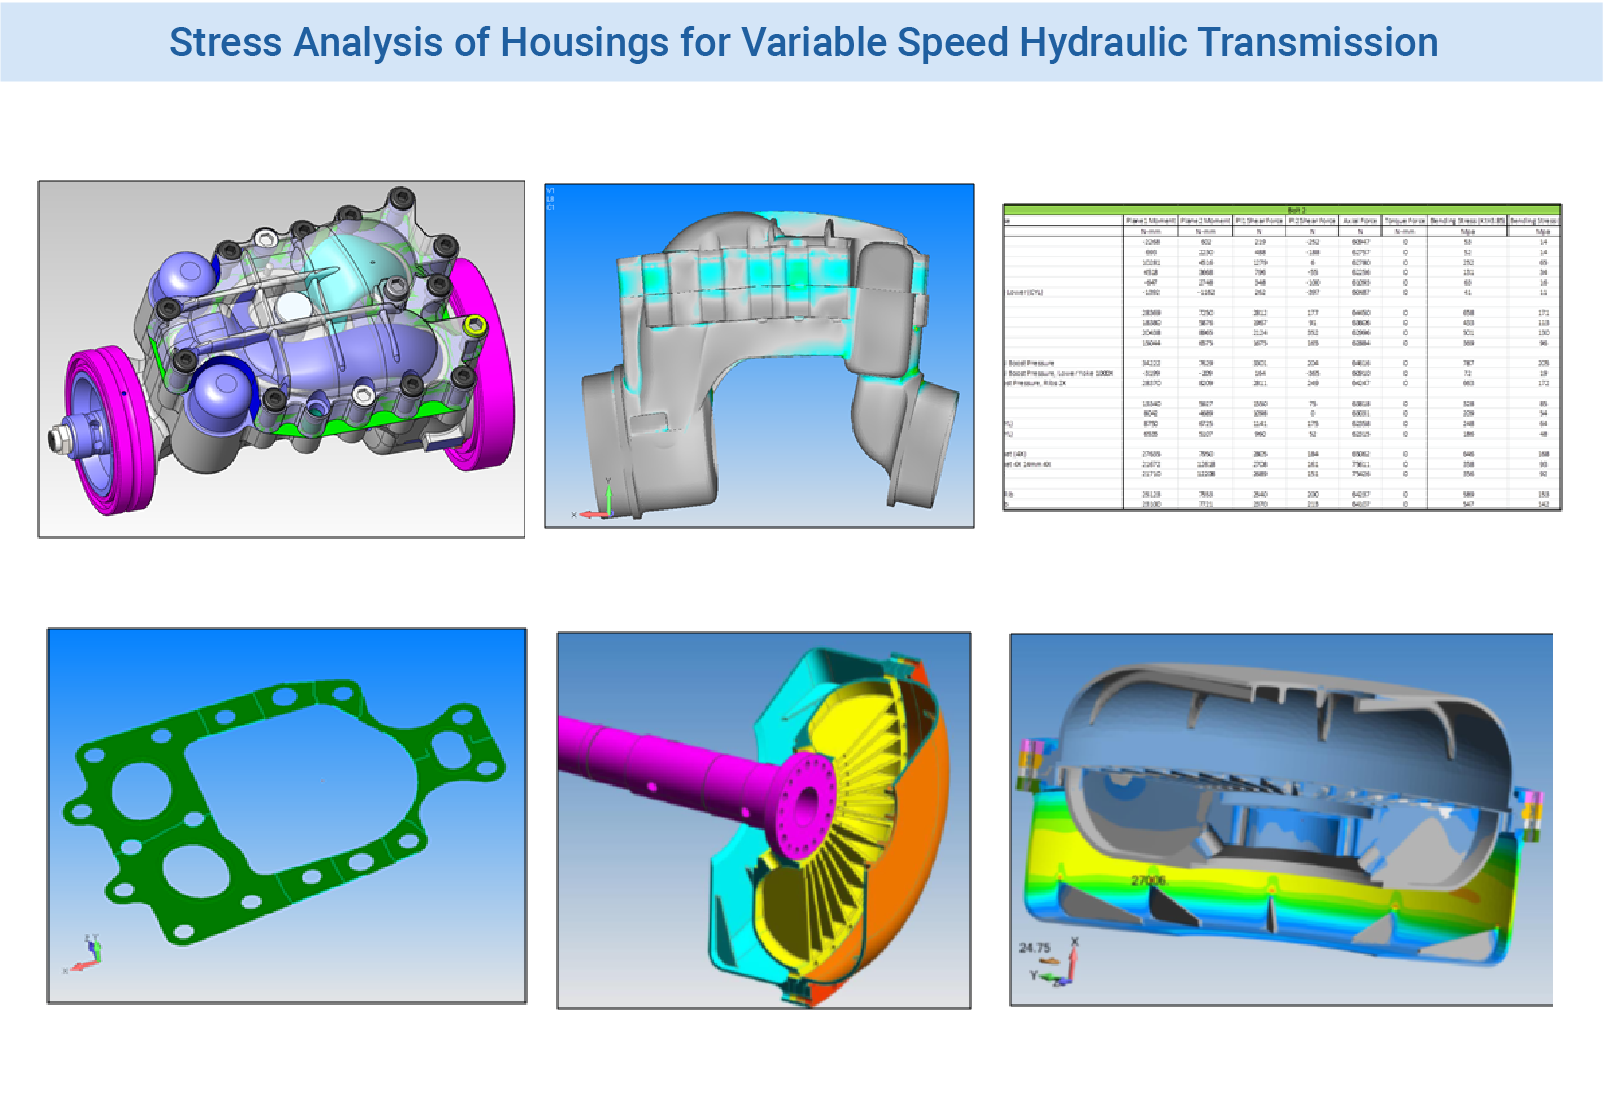 FEA Consulting Engineers - Hydraulic Variable-Speed Transmission Housing Analysis under Internal Pressure and Thermal-Stress